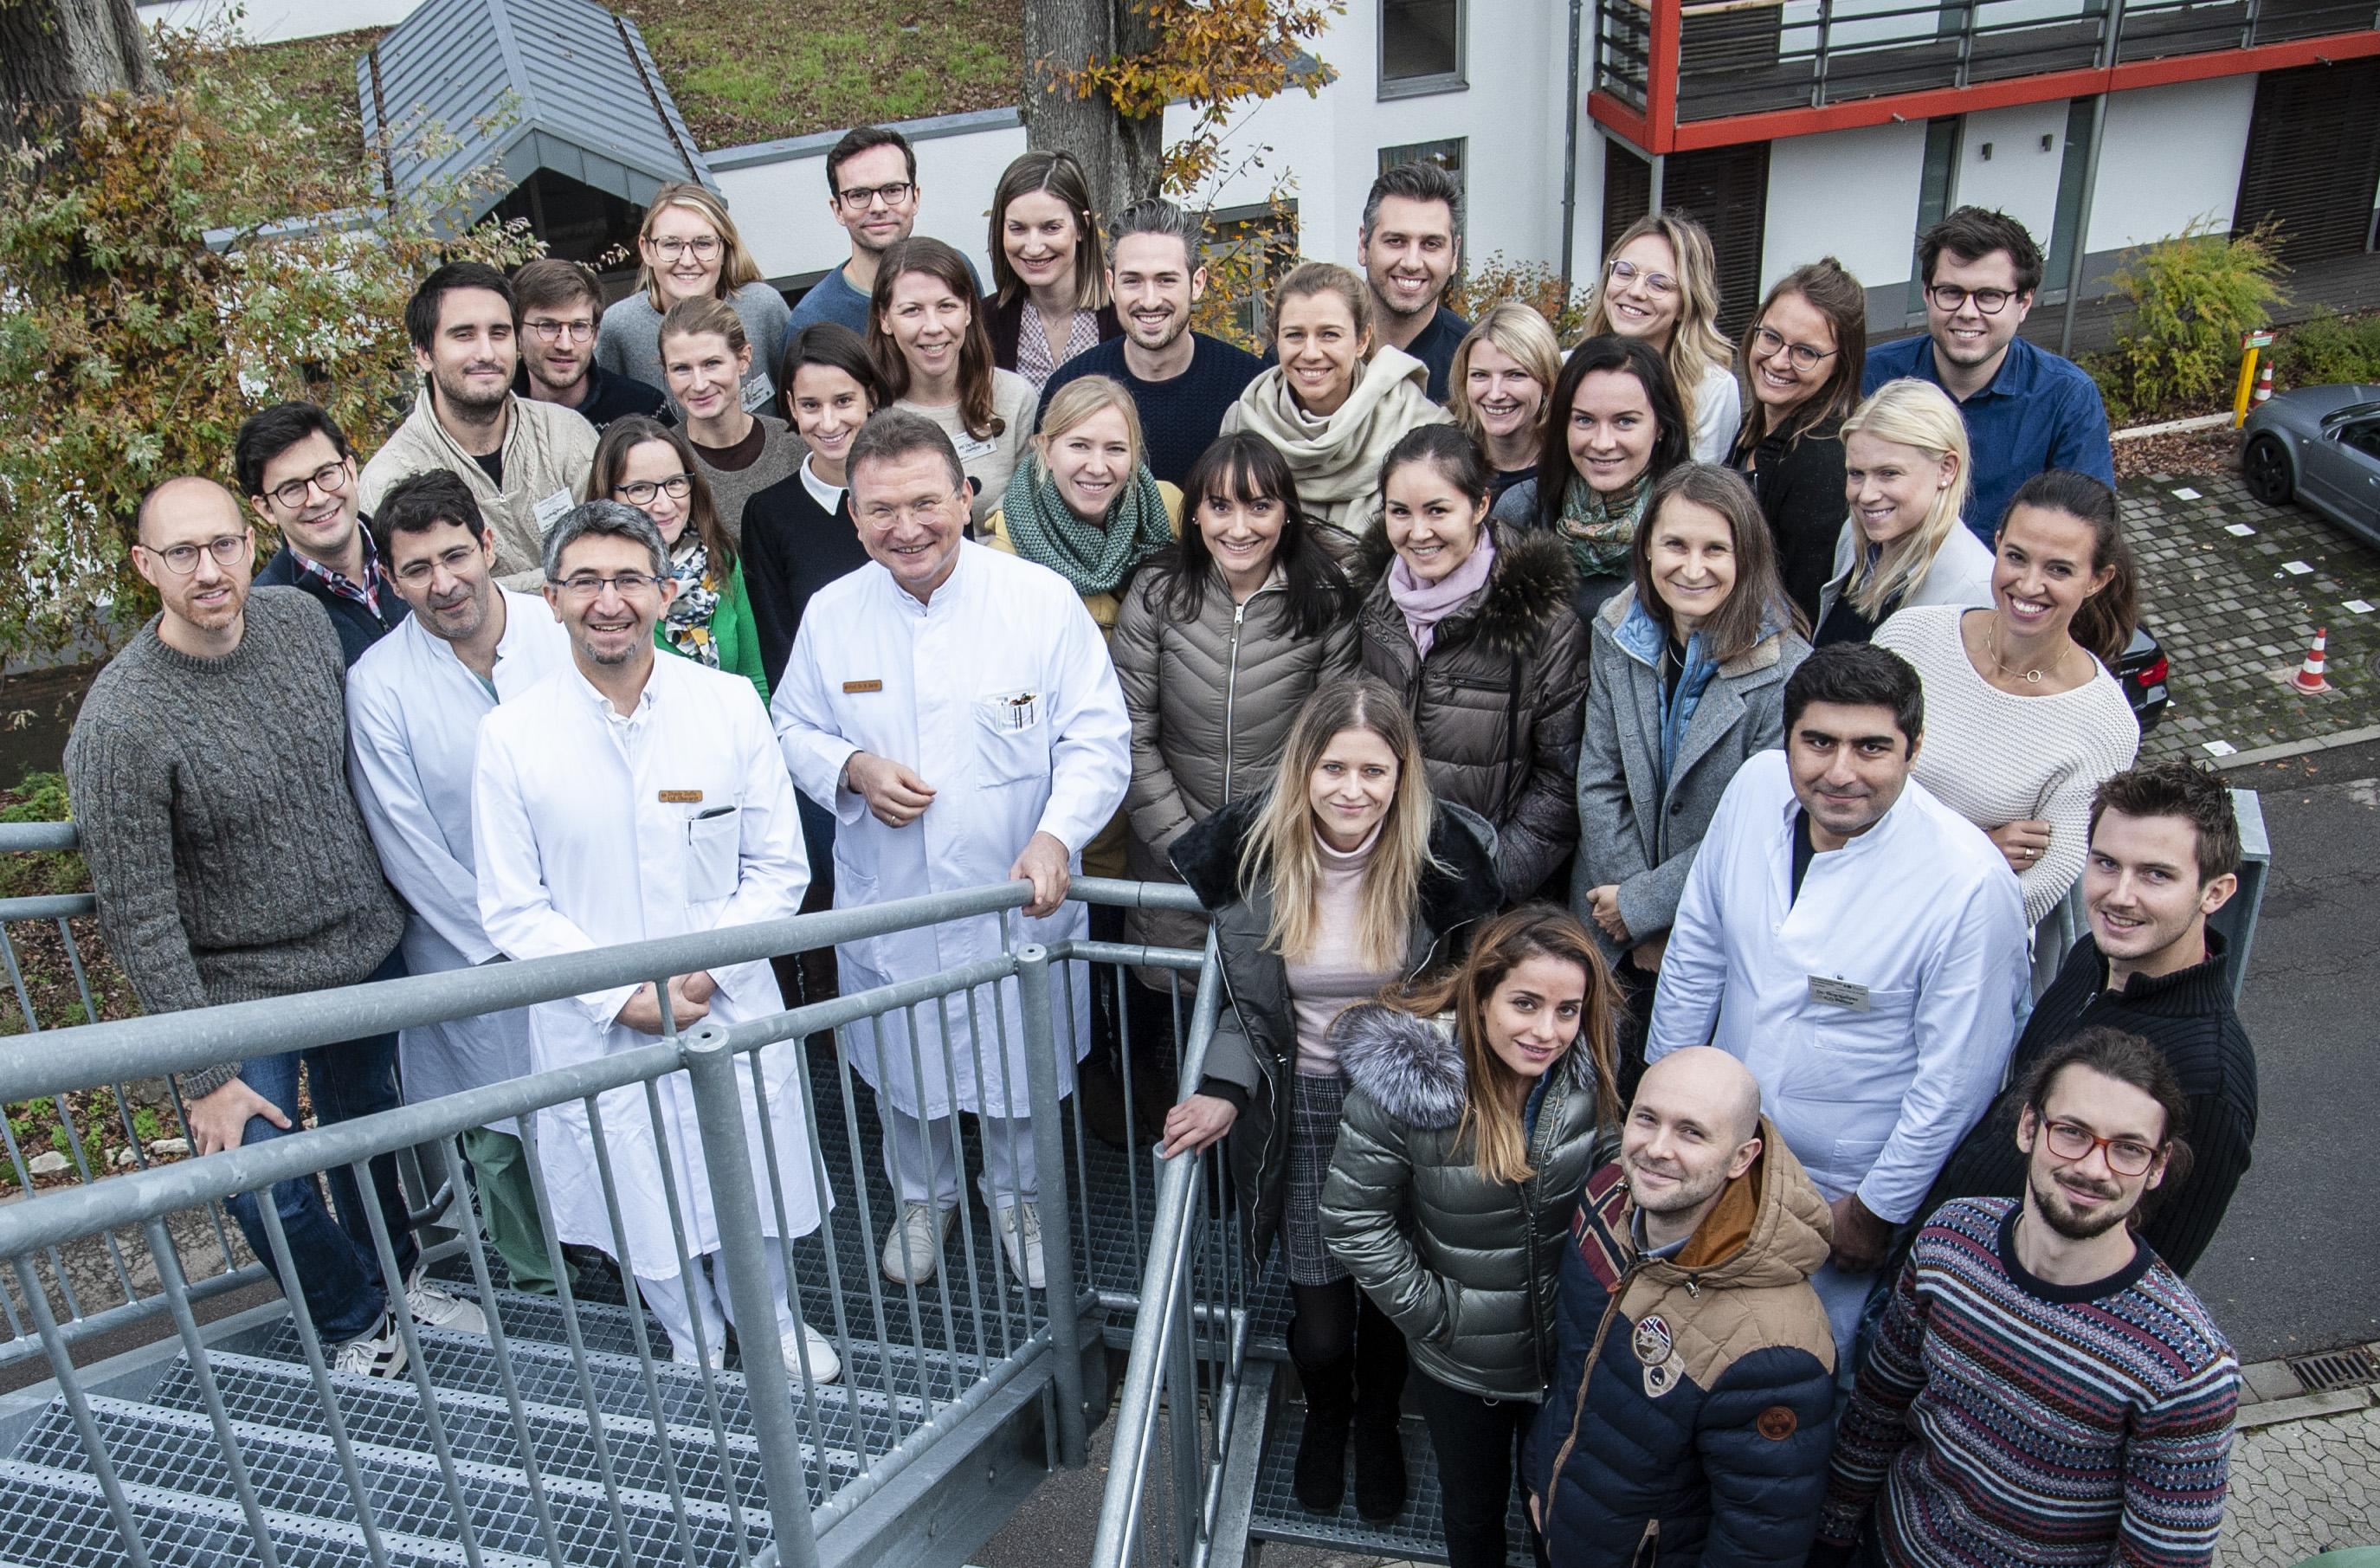 Homburger Cornea Curriculum 2019 HCC  vom 13. – 16.11.2019 in Homburg/Saar